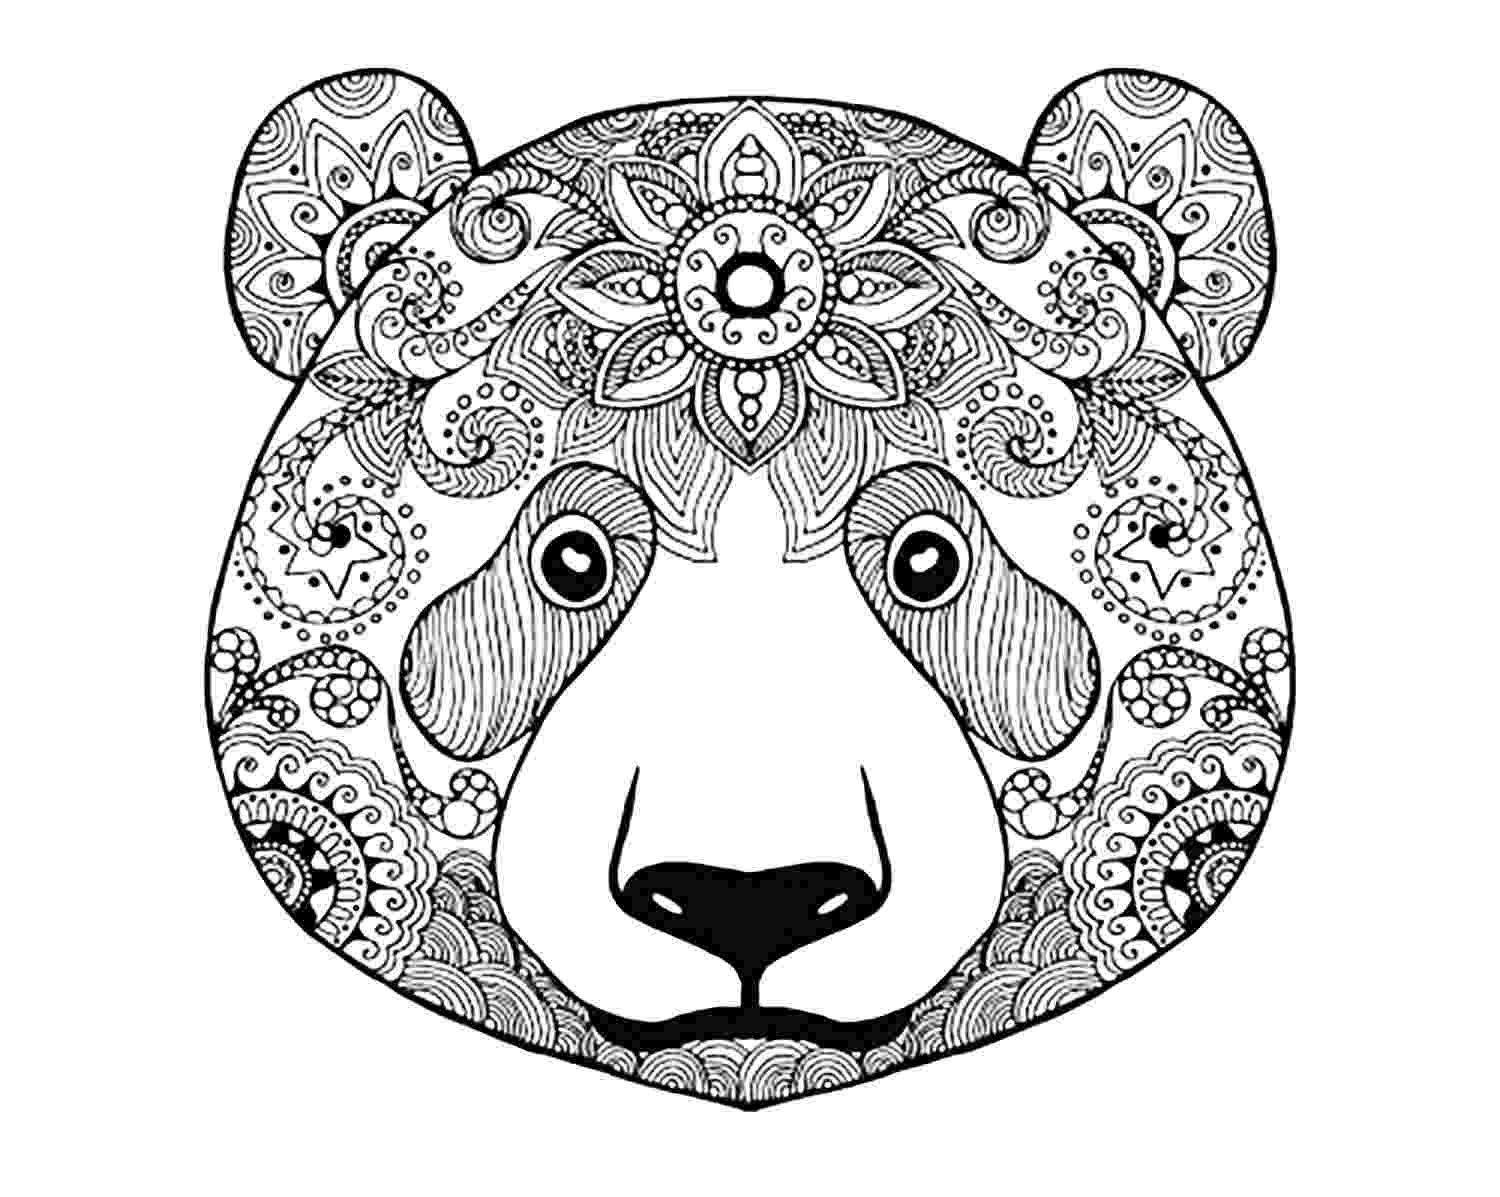 animal colouring pages free adult coloring pages animals best coloring pages for kids animal colouring pages free